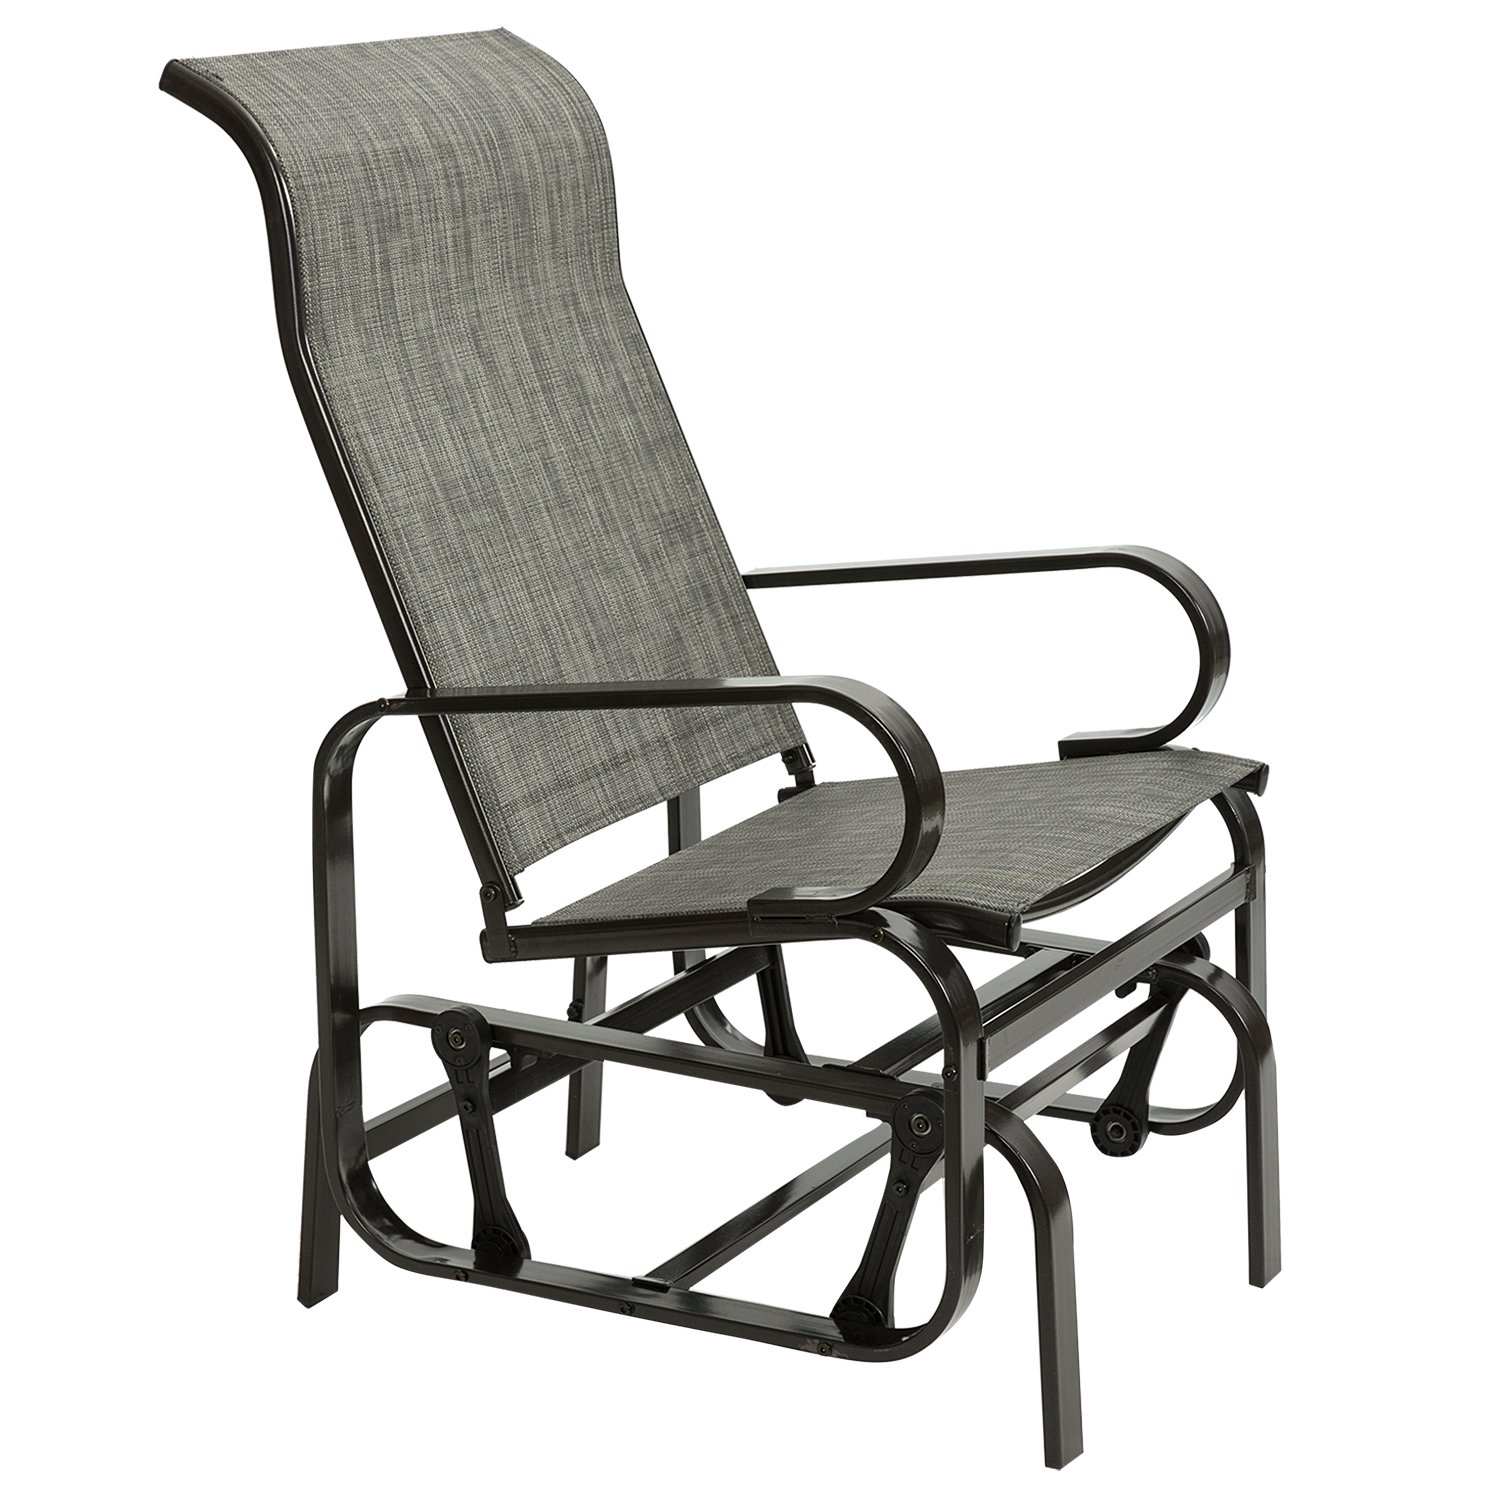 Amazon com artall patio sling rocker chair outdoor glider rocking lounge chair all weatherproof grey garden outdoor